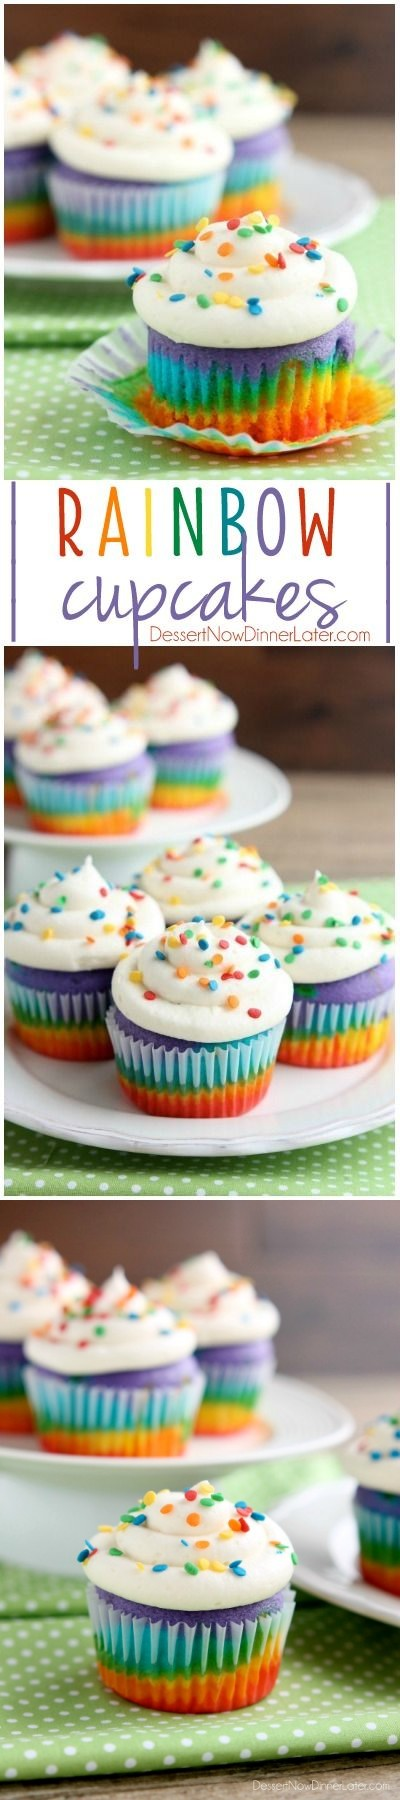 Layered Rainbow Cupcakes